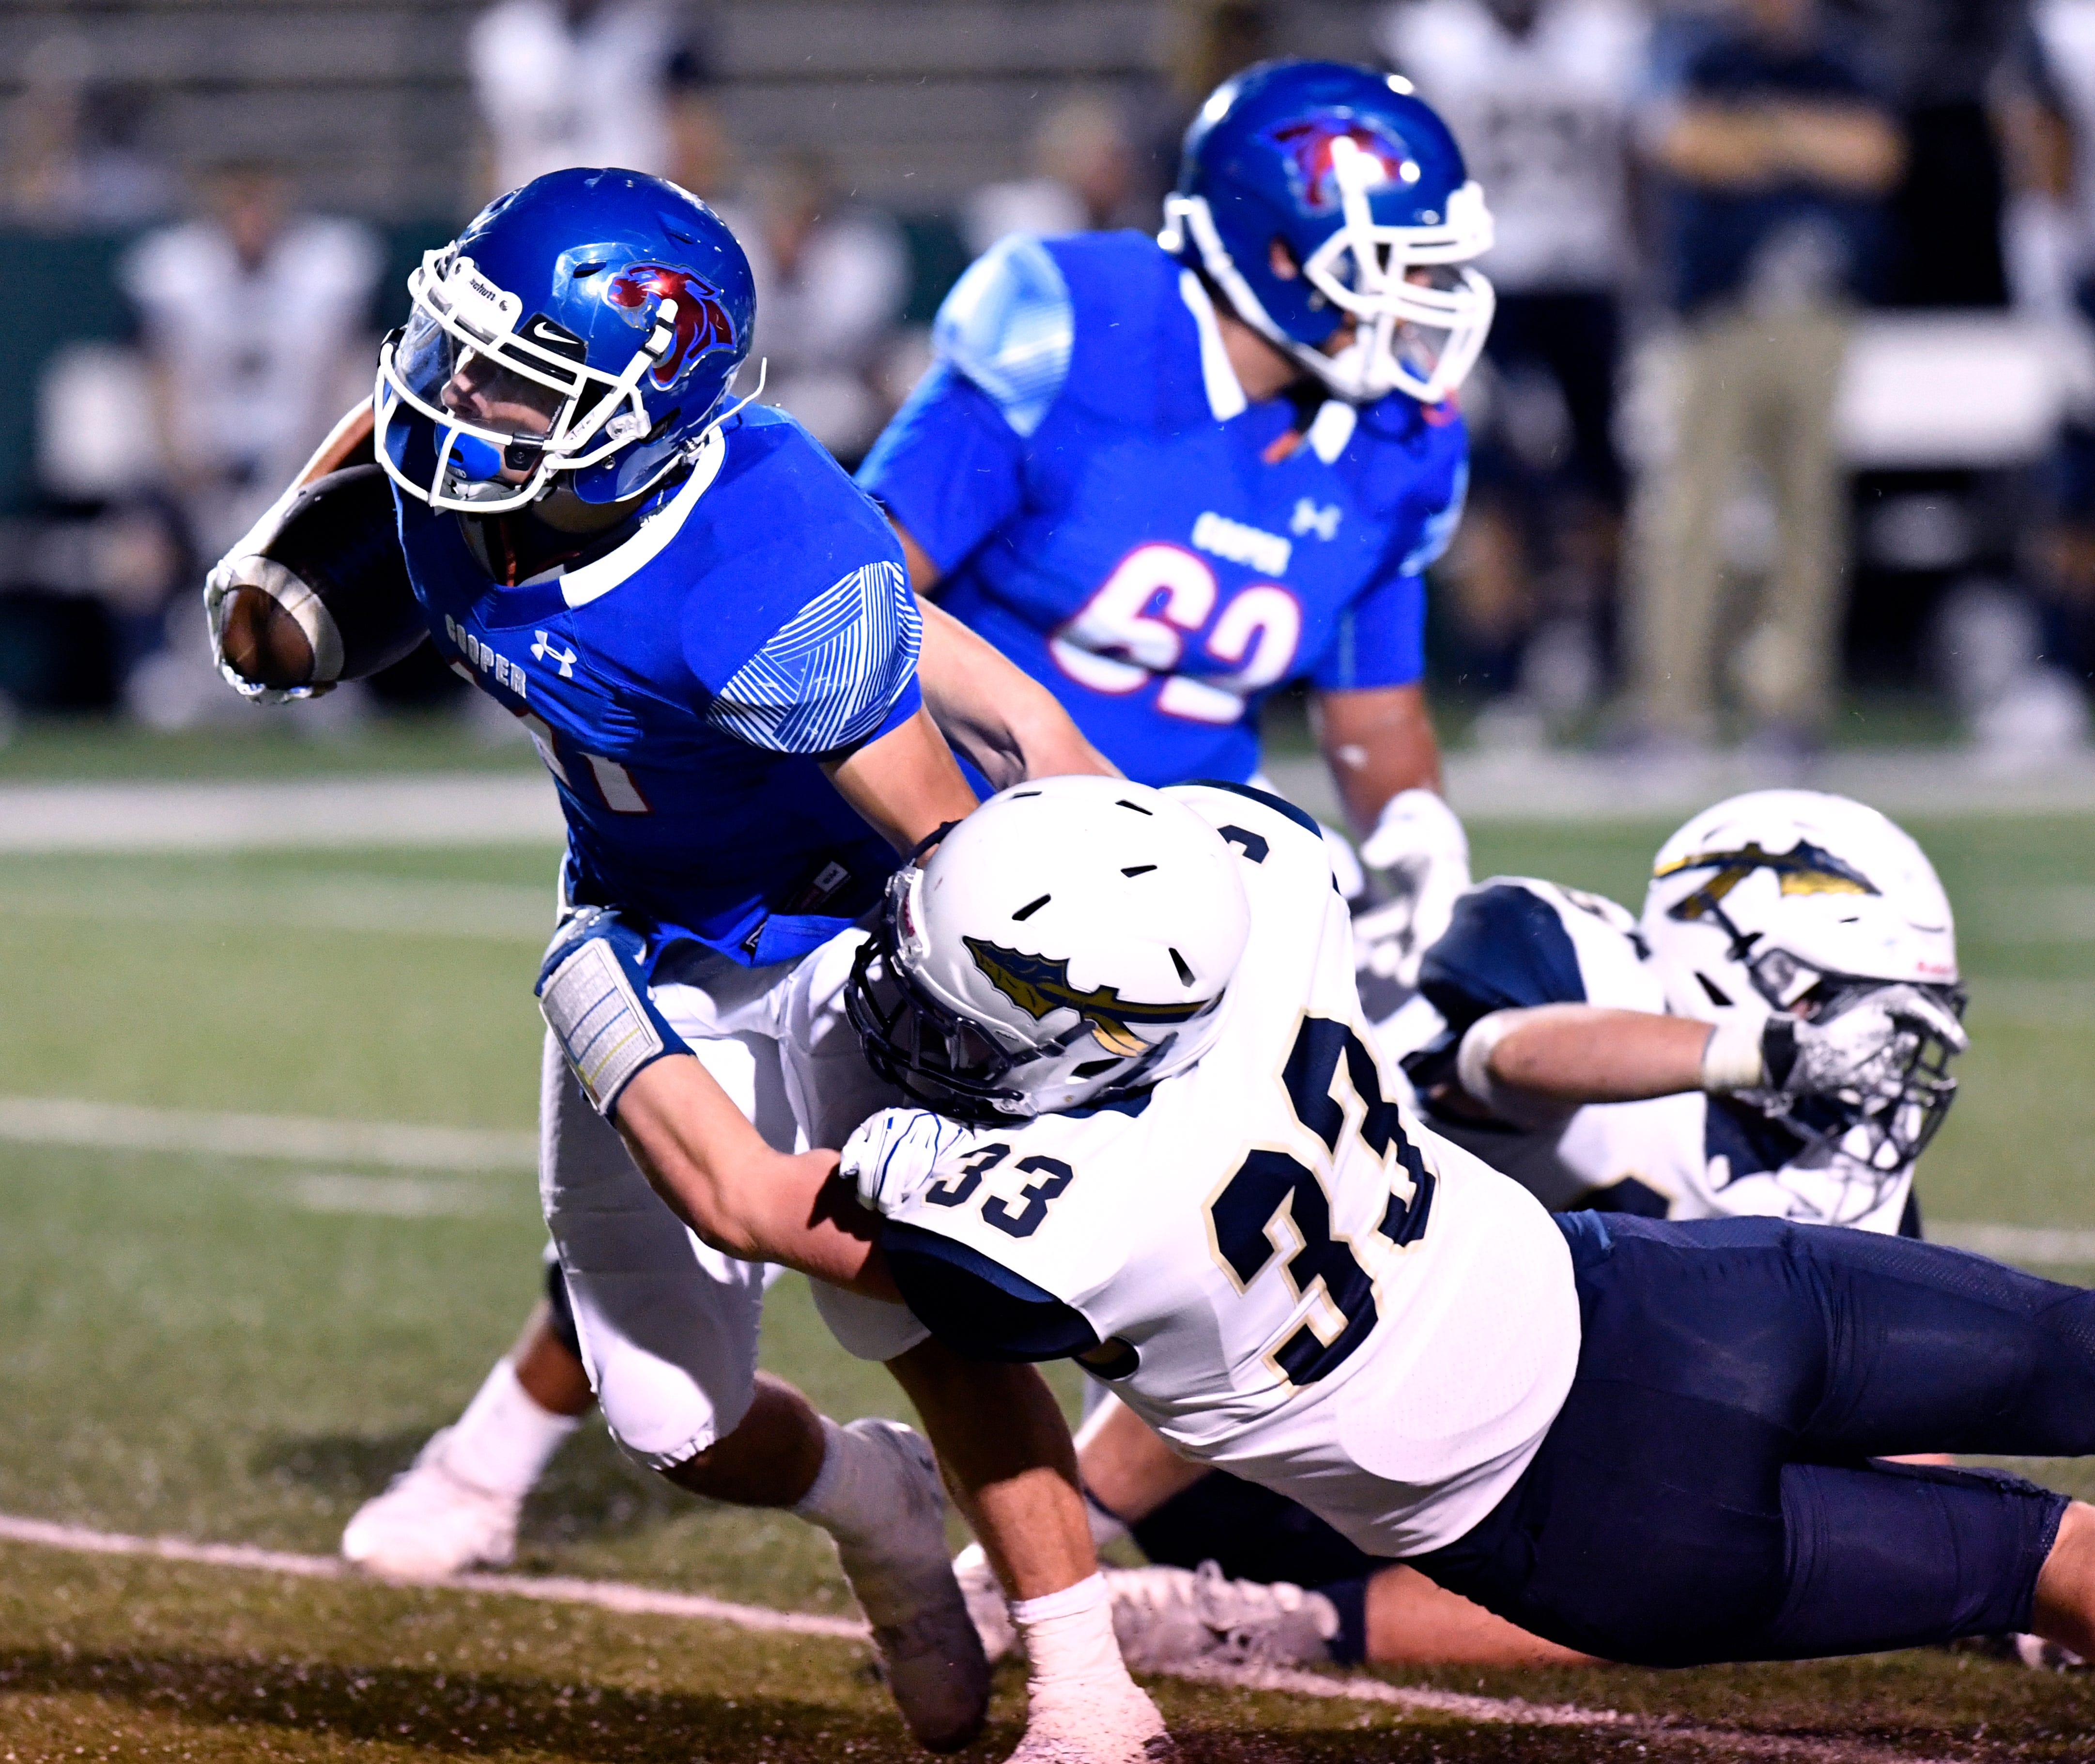 Cougars' running back Nic Bailey is tackled by Keller's Conner Medlock during Friday's game at Shotwell Stadium. It was Bailey's first game with the Cooper varsity.